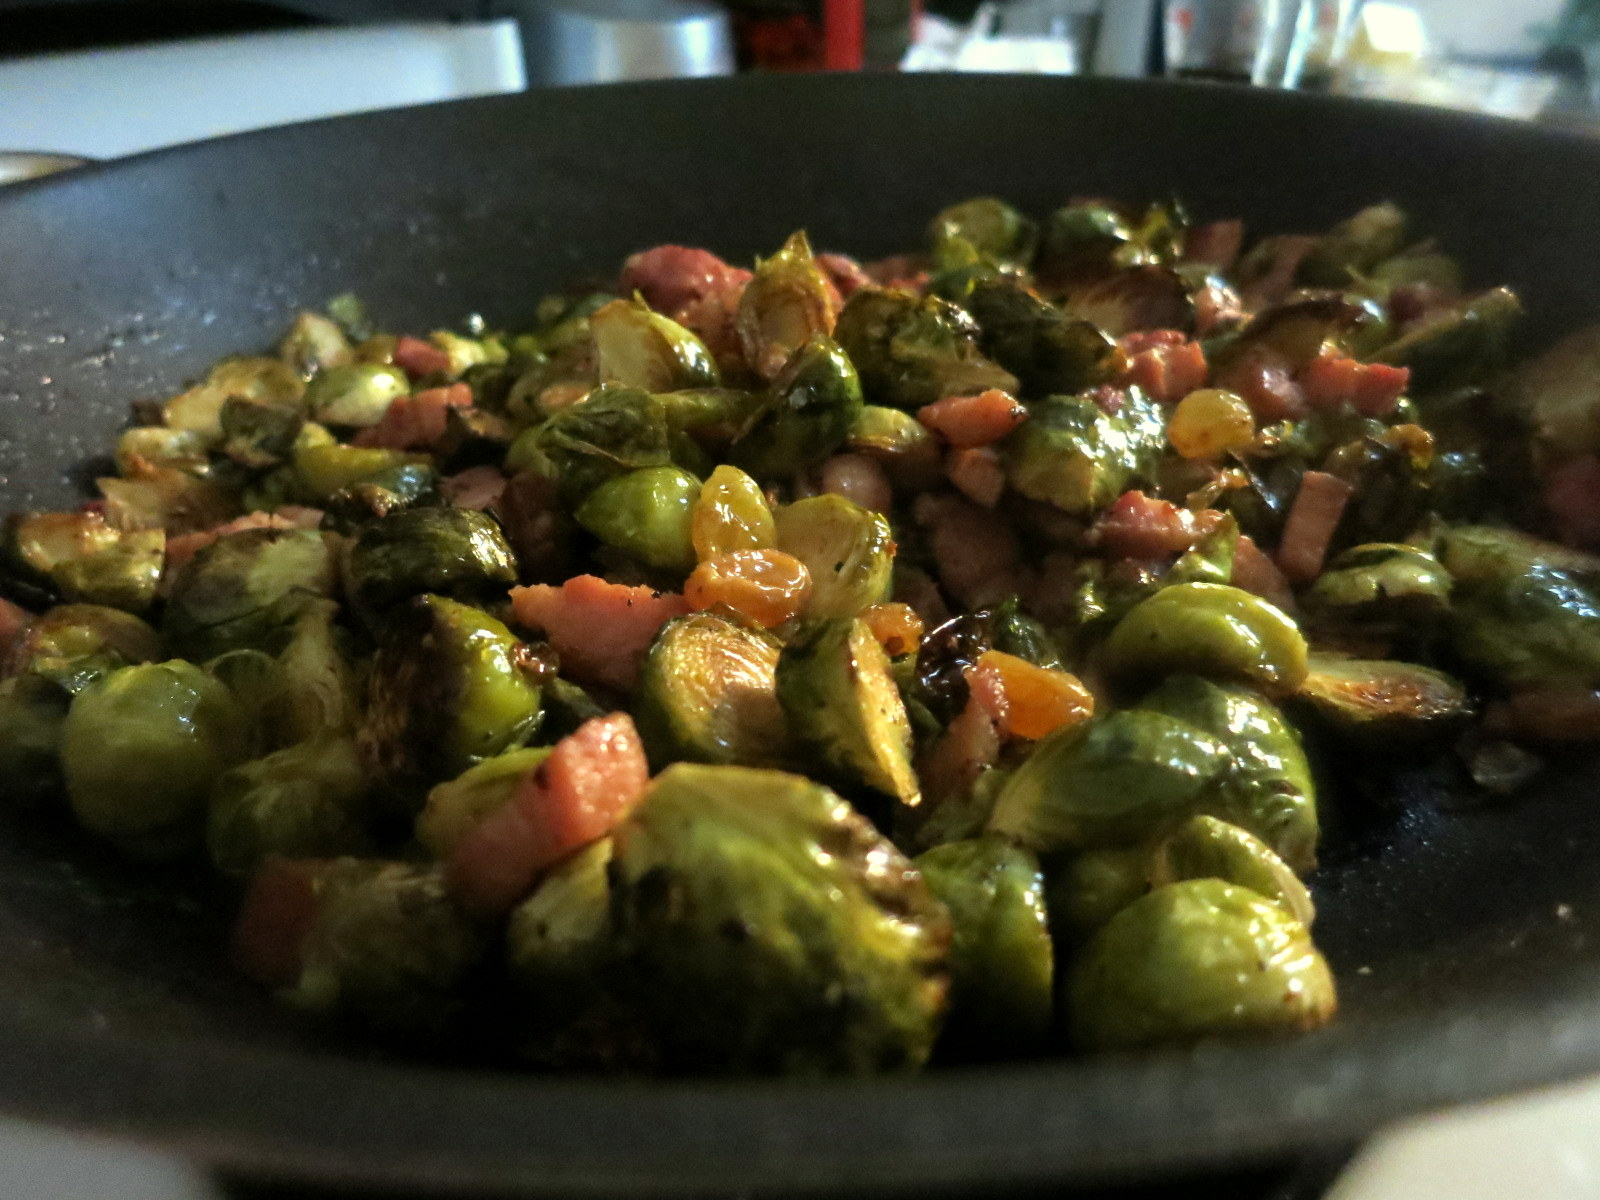 Brussels sprouts with pancetta and golden raisins